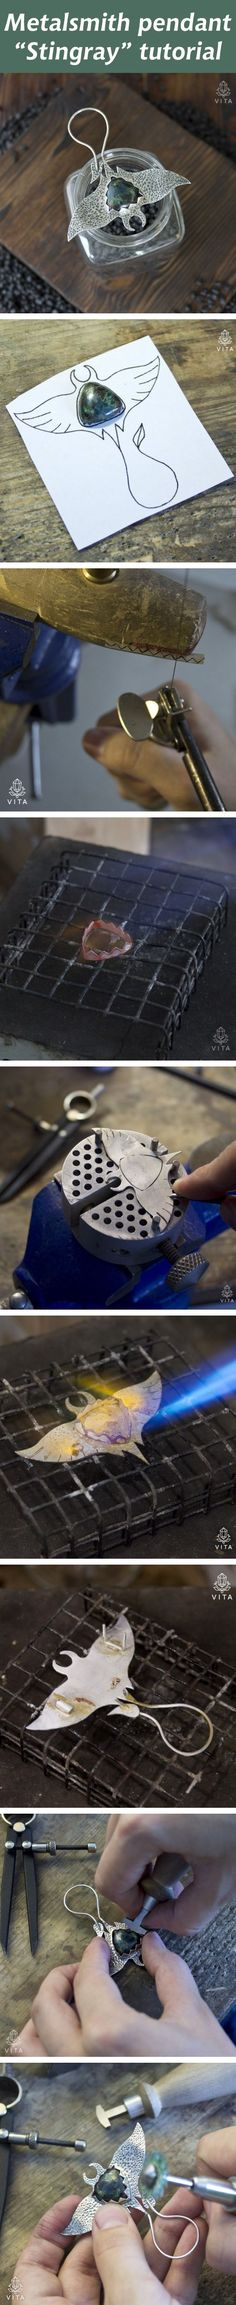 "Metalsmith pendant ""Stingray"" tutorial"